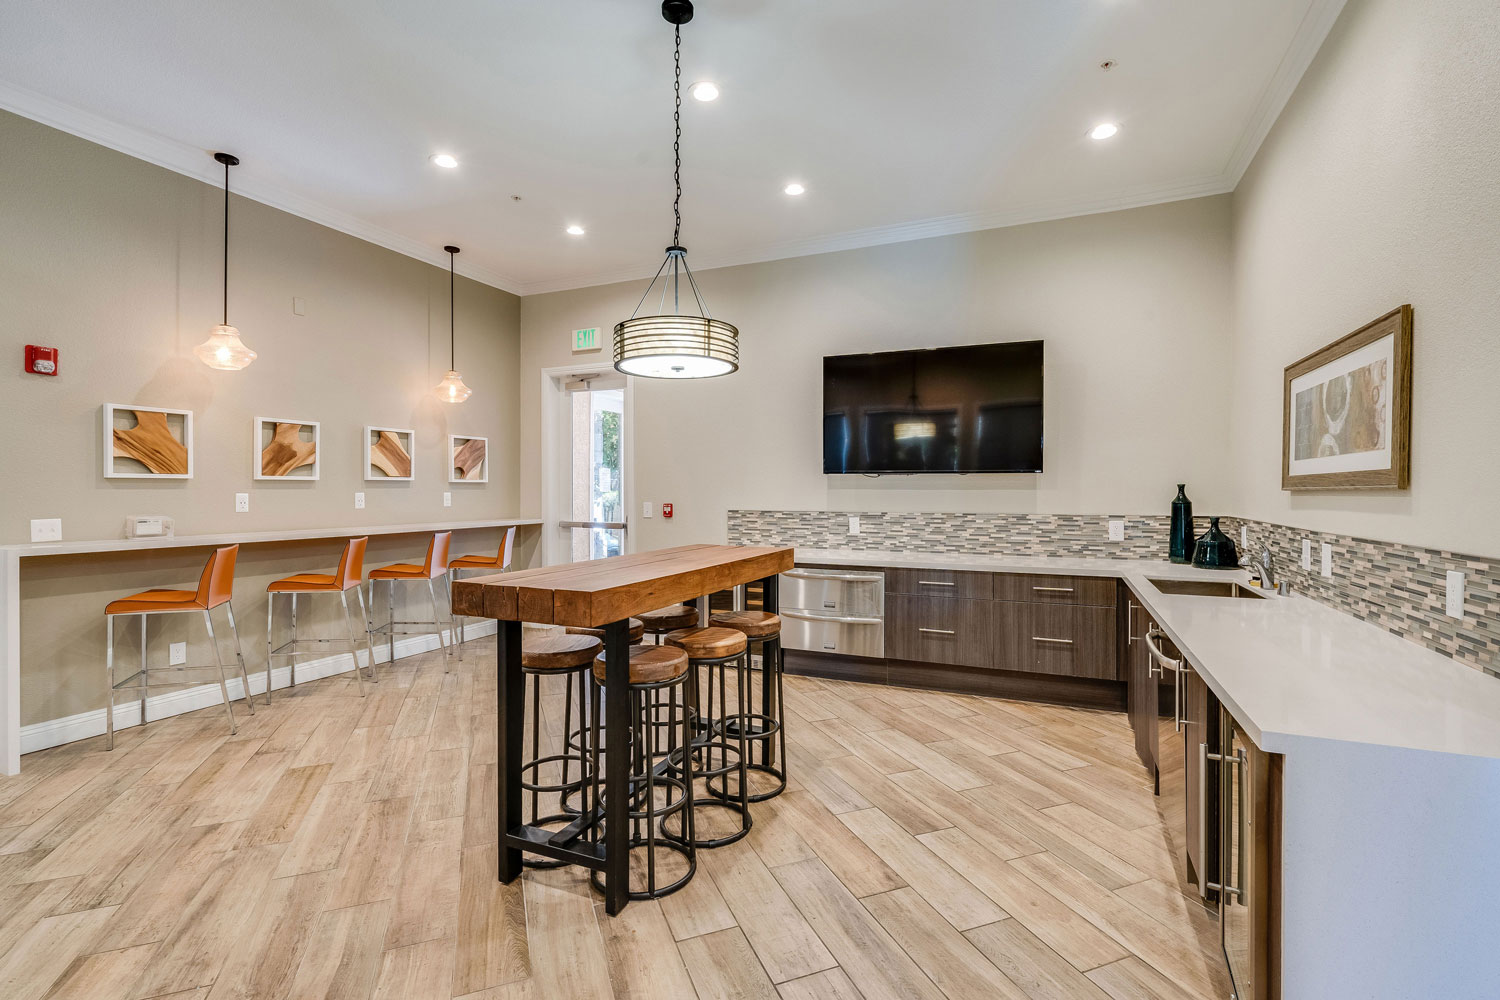 Community kitchen with island and barstool seating, and a large wall mounted TV